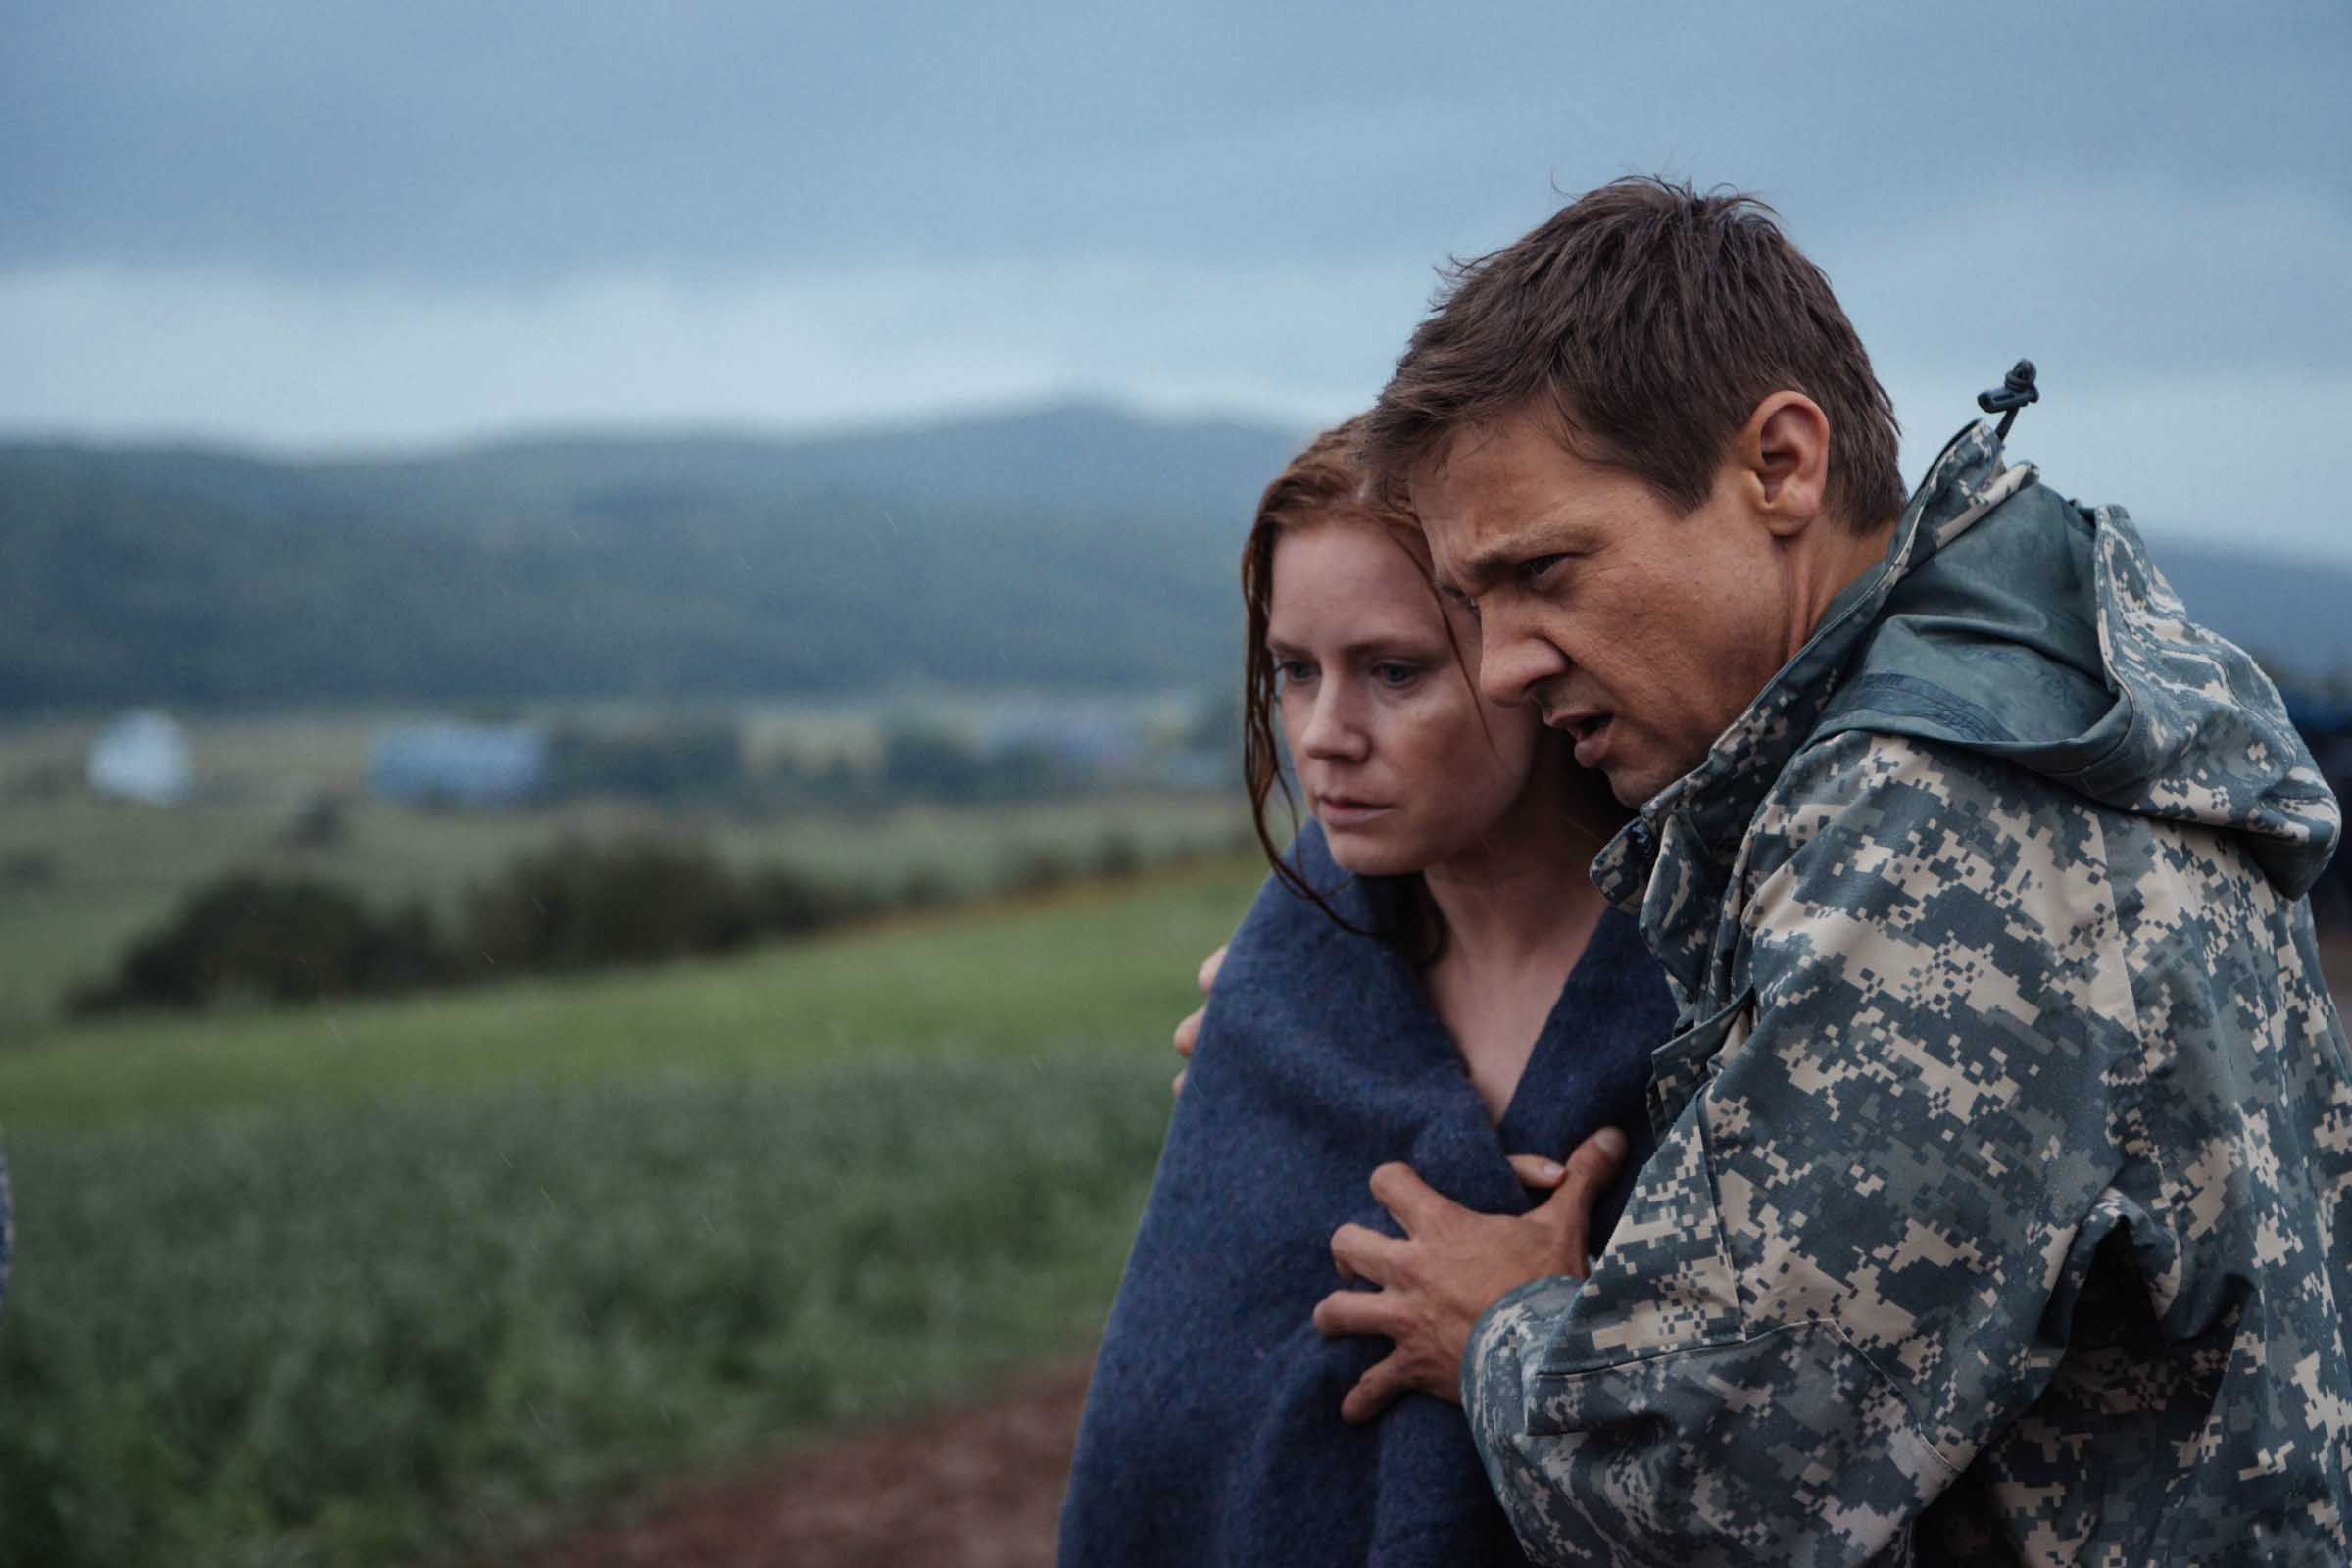 Arrival jeremy renner amy adams photos